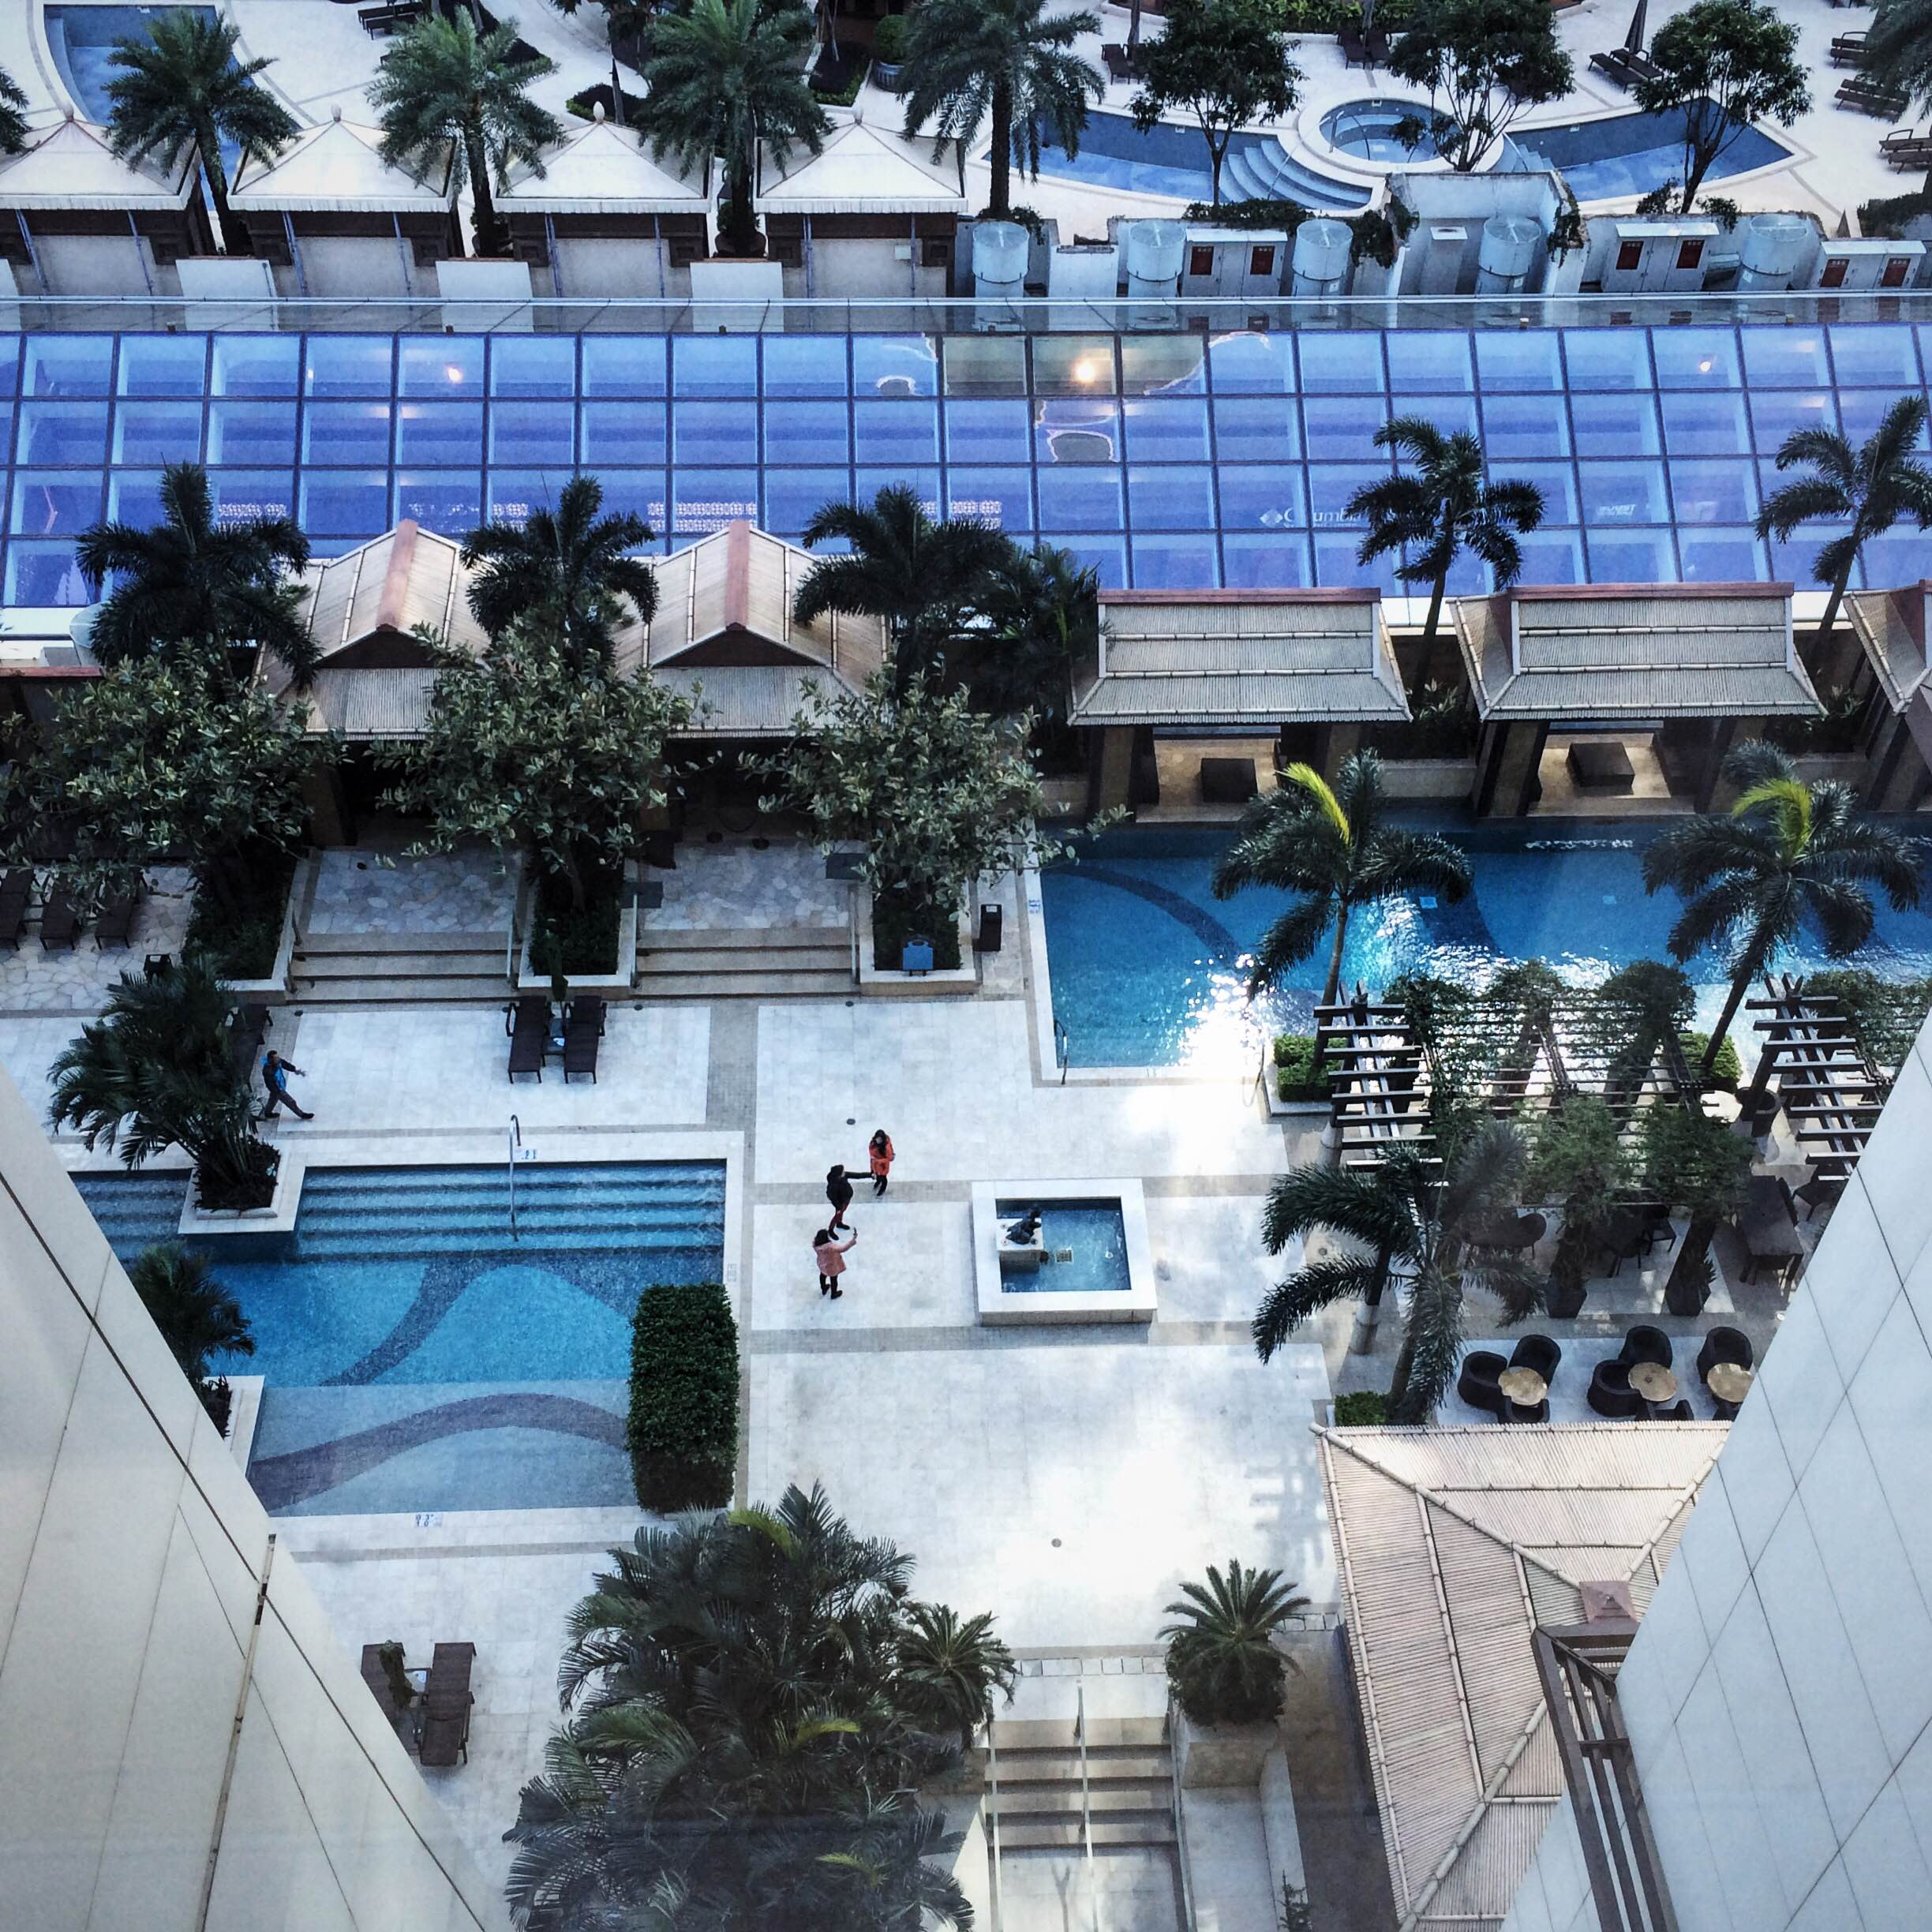 From the Sheraton Macau. My kingdom for this pool in sunny weather